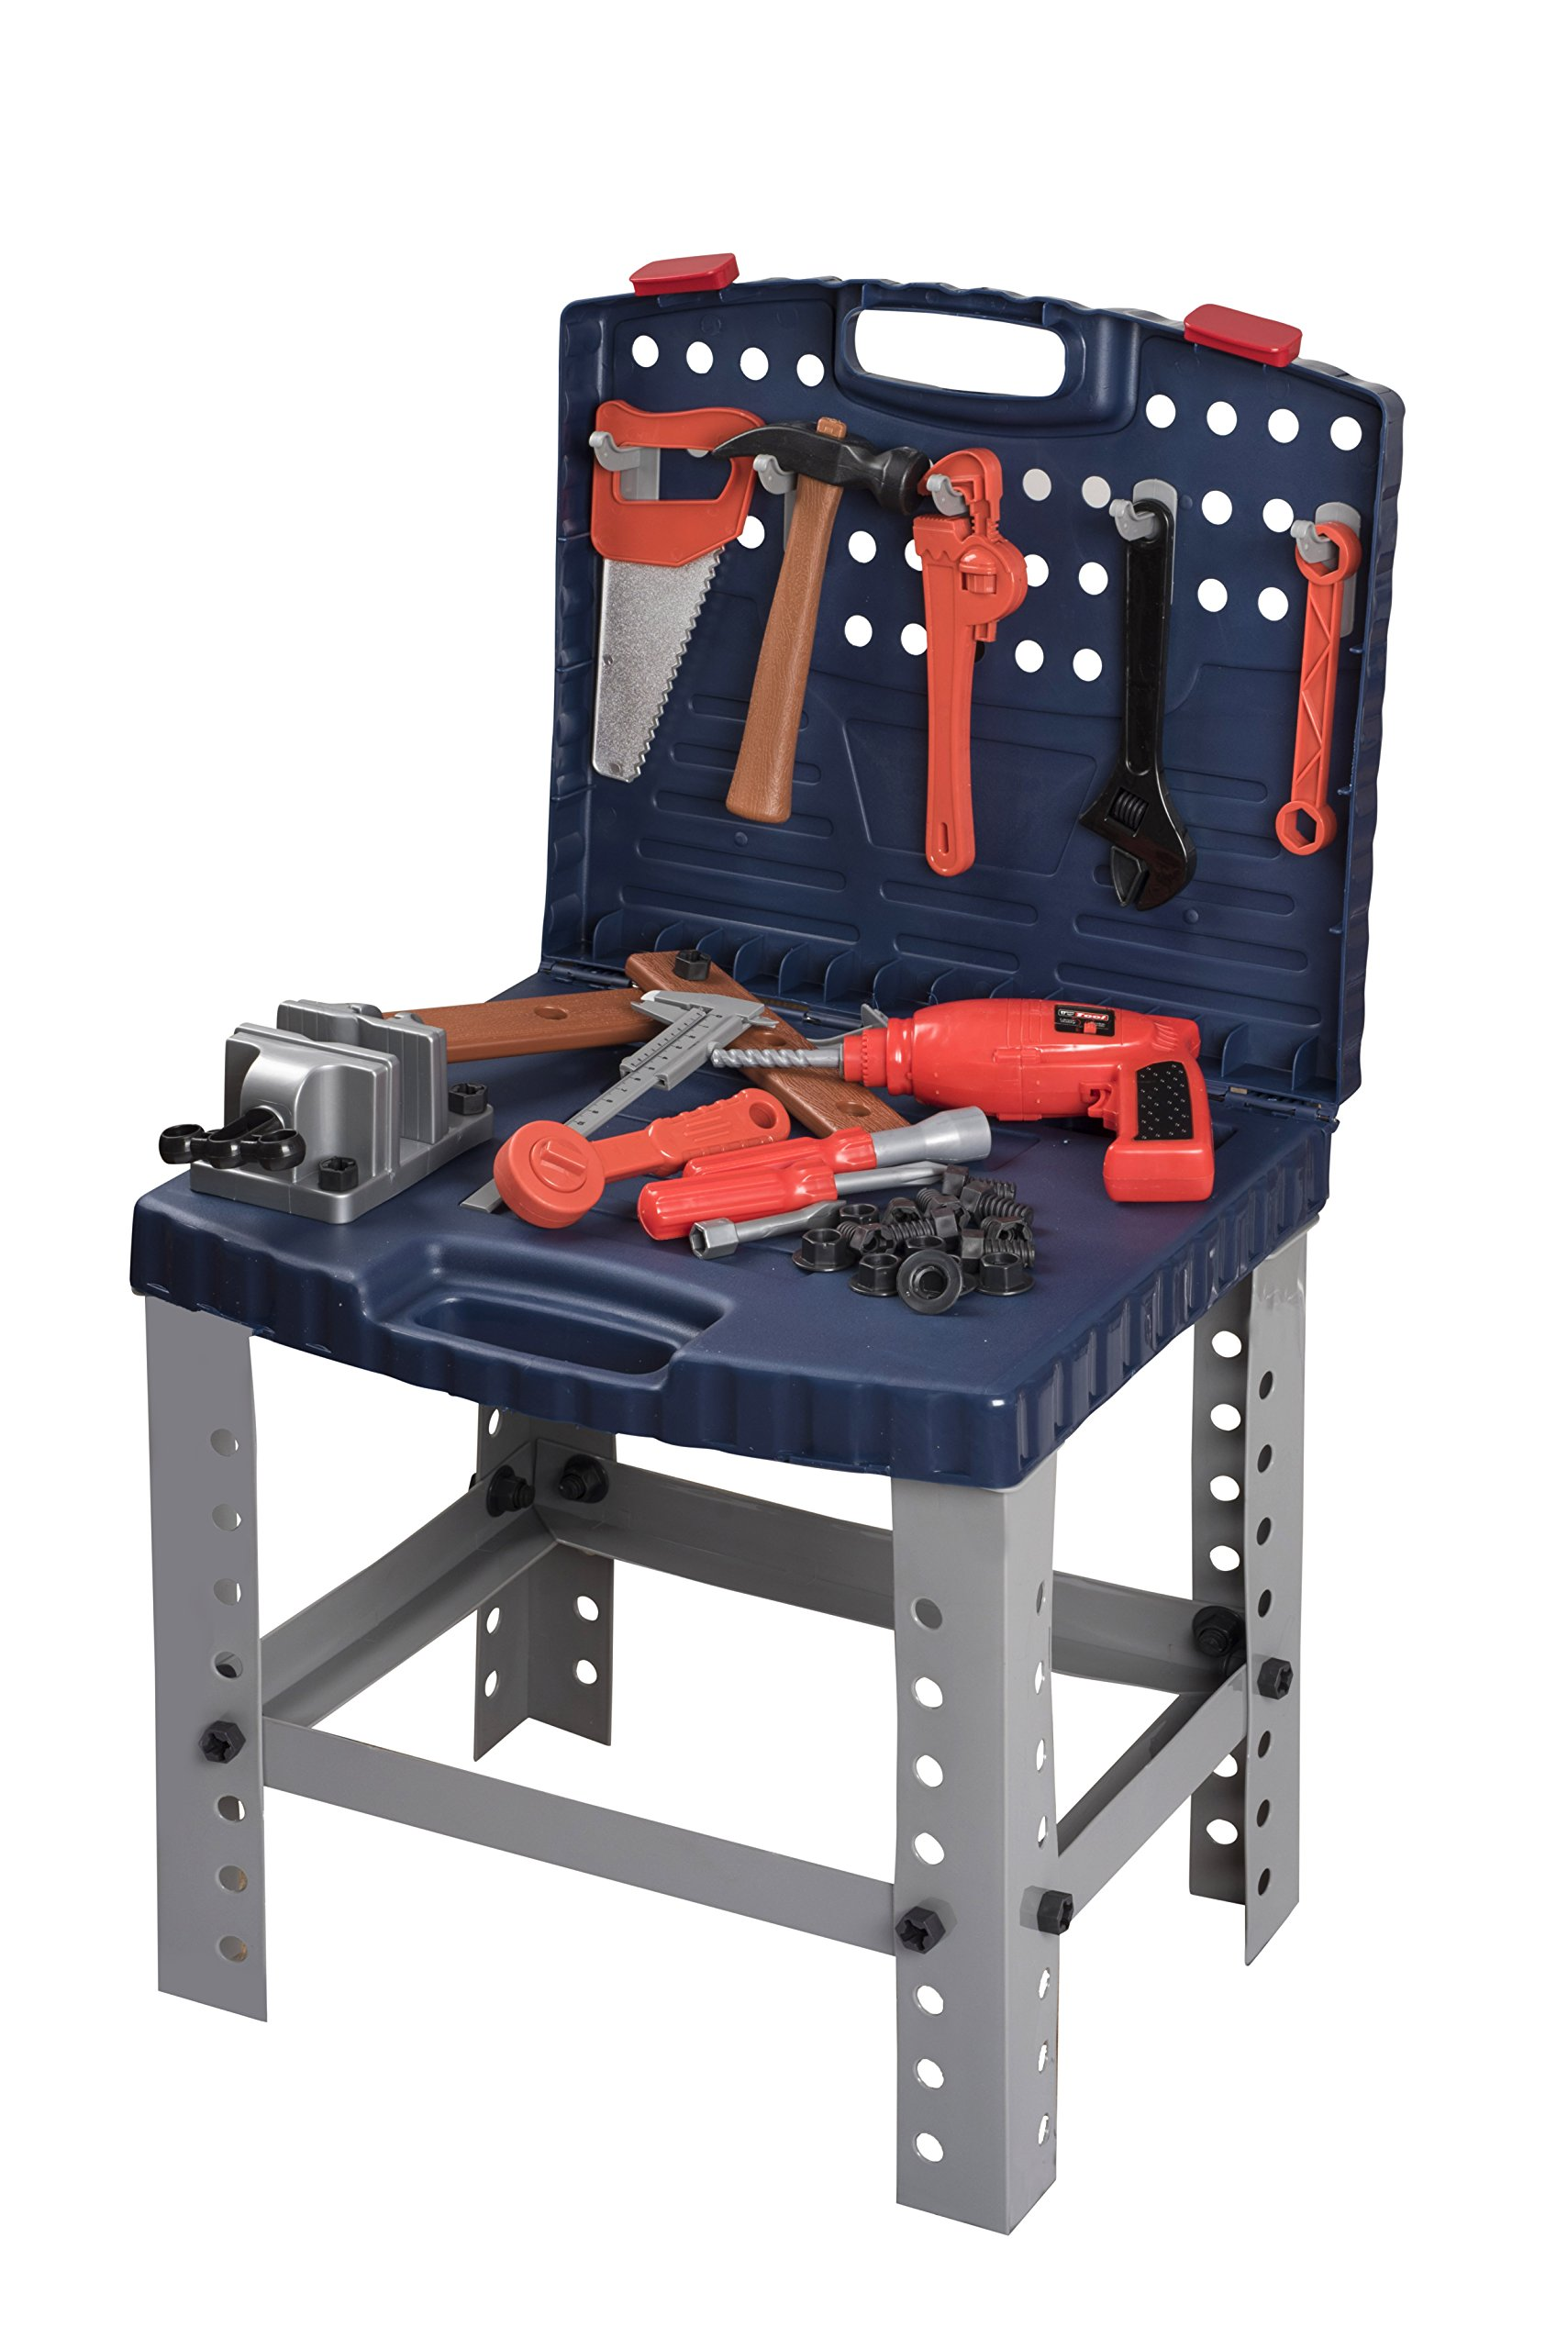 Toy Tool Set Workbench for Toddlers and Children Pretend Play- Kids Workshop Toolbench Building Toys - Kids Tools Playset with Realistic Tools and Electric Drill by Toyrifik (Image #1)